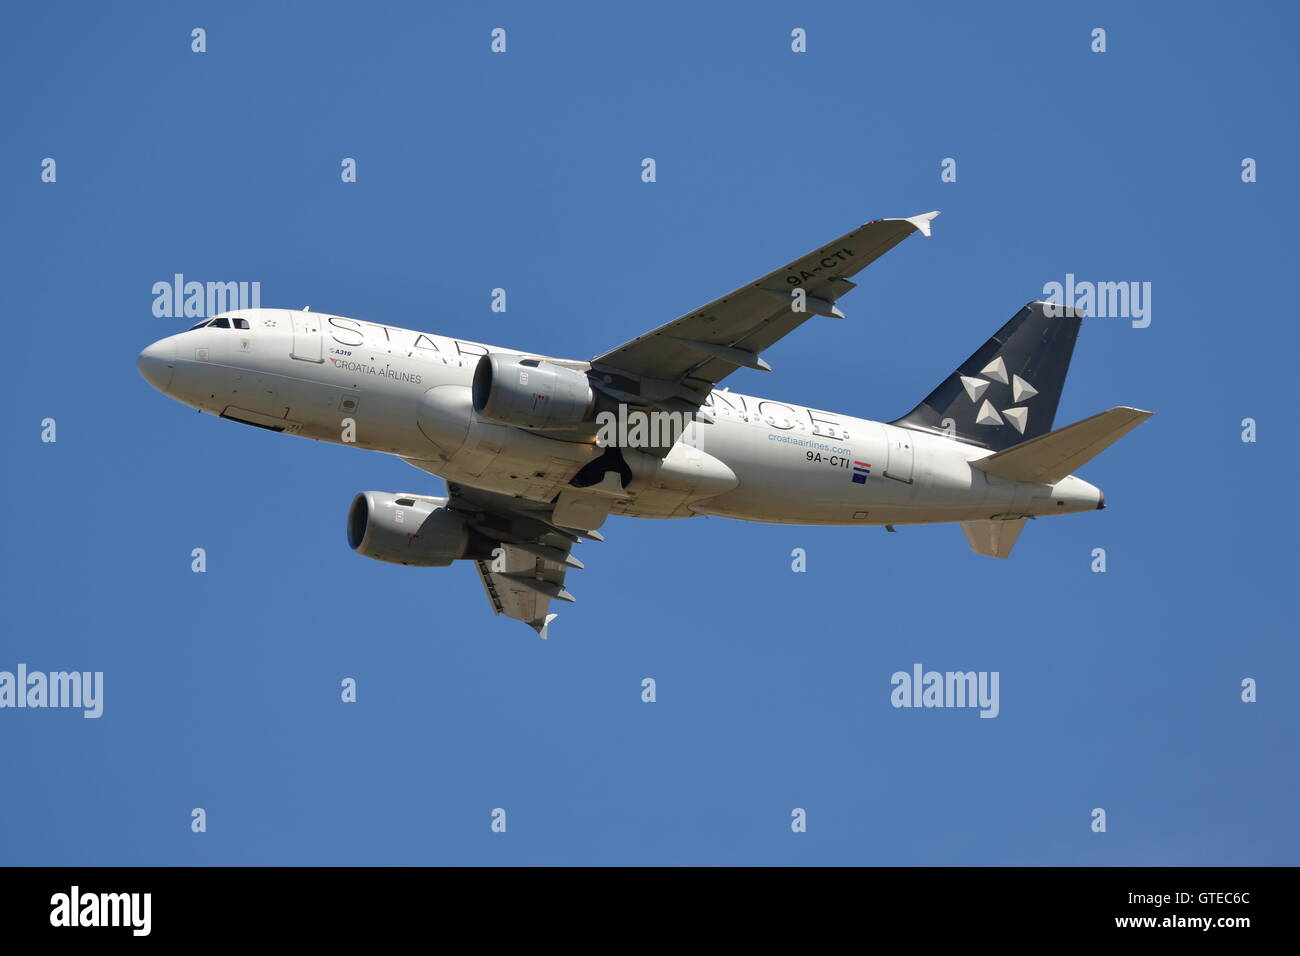 Croatia Airlines Airbus A319-112 9A-CTI departing from Heathrow Airport, London - Stock Image